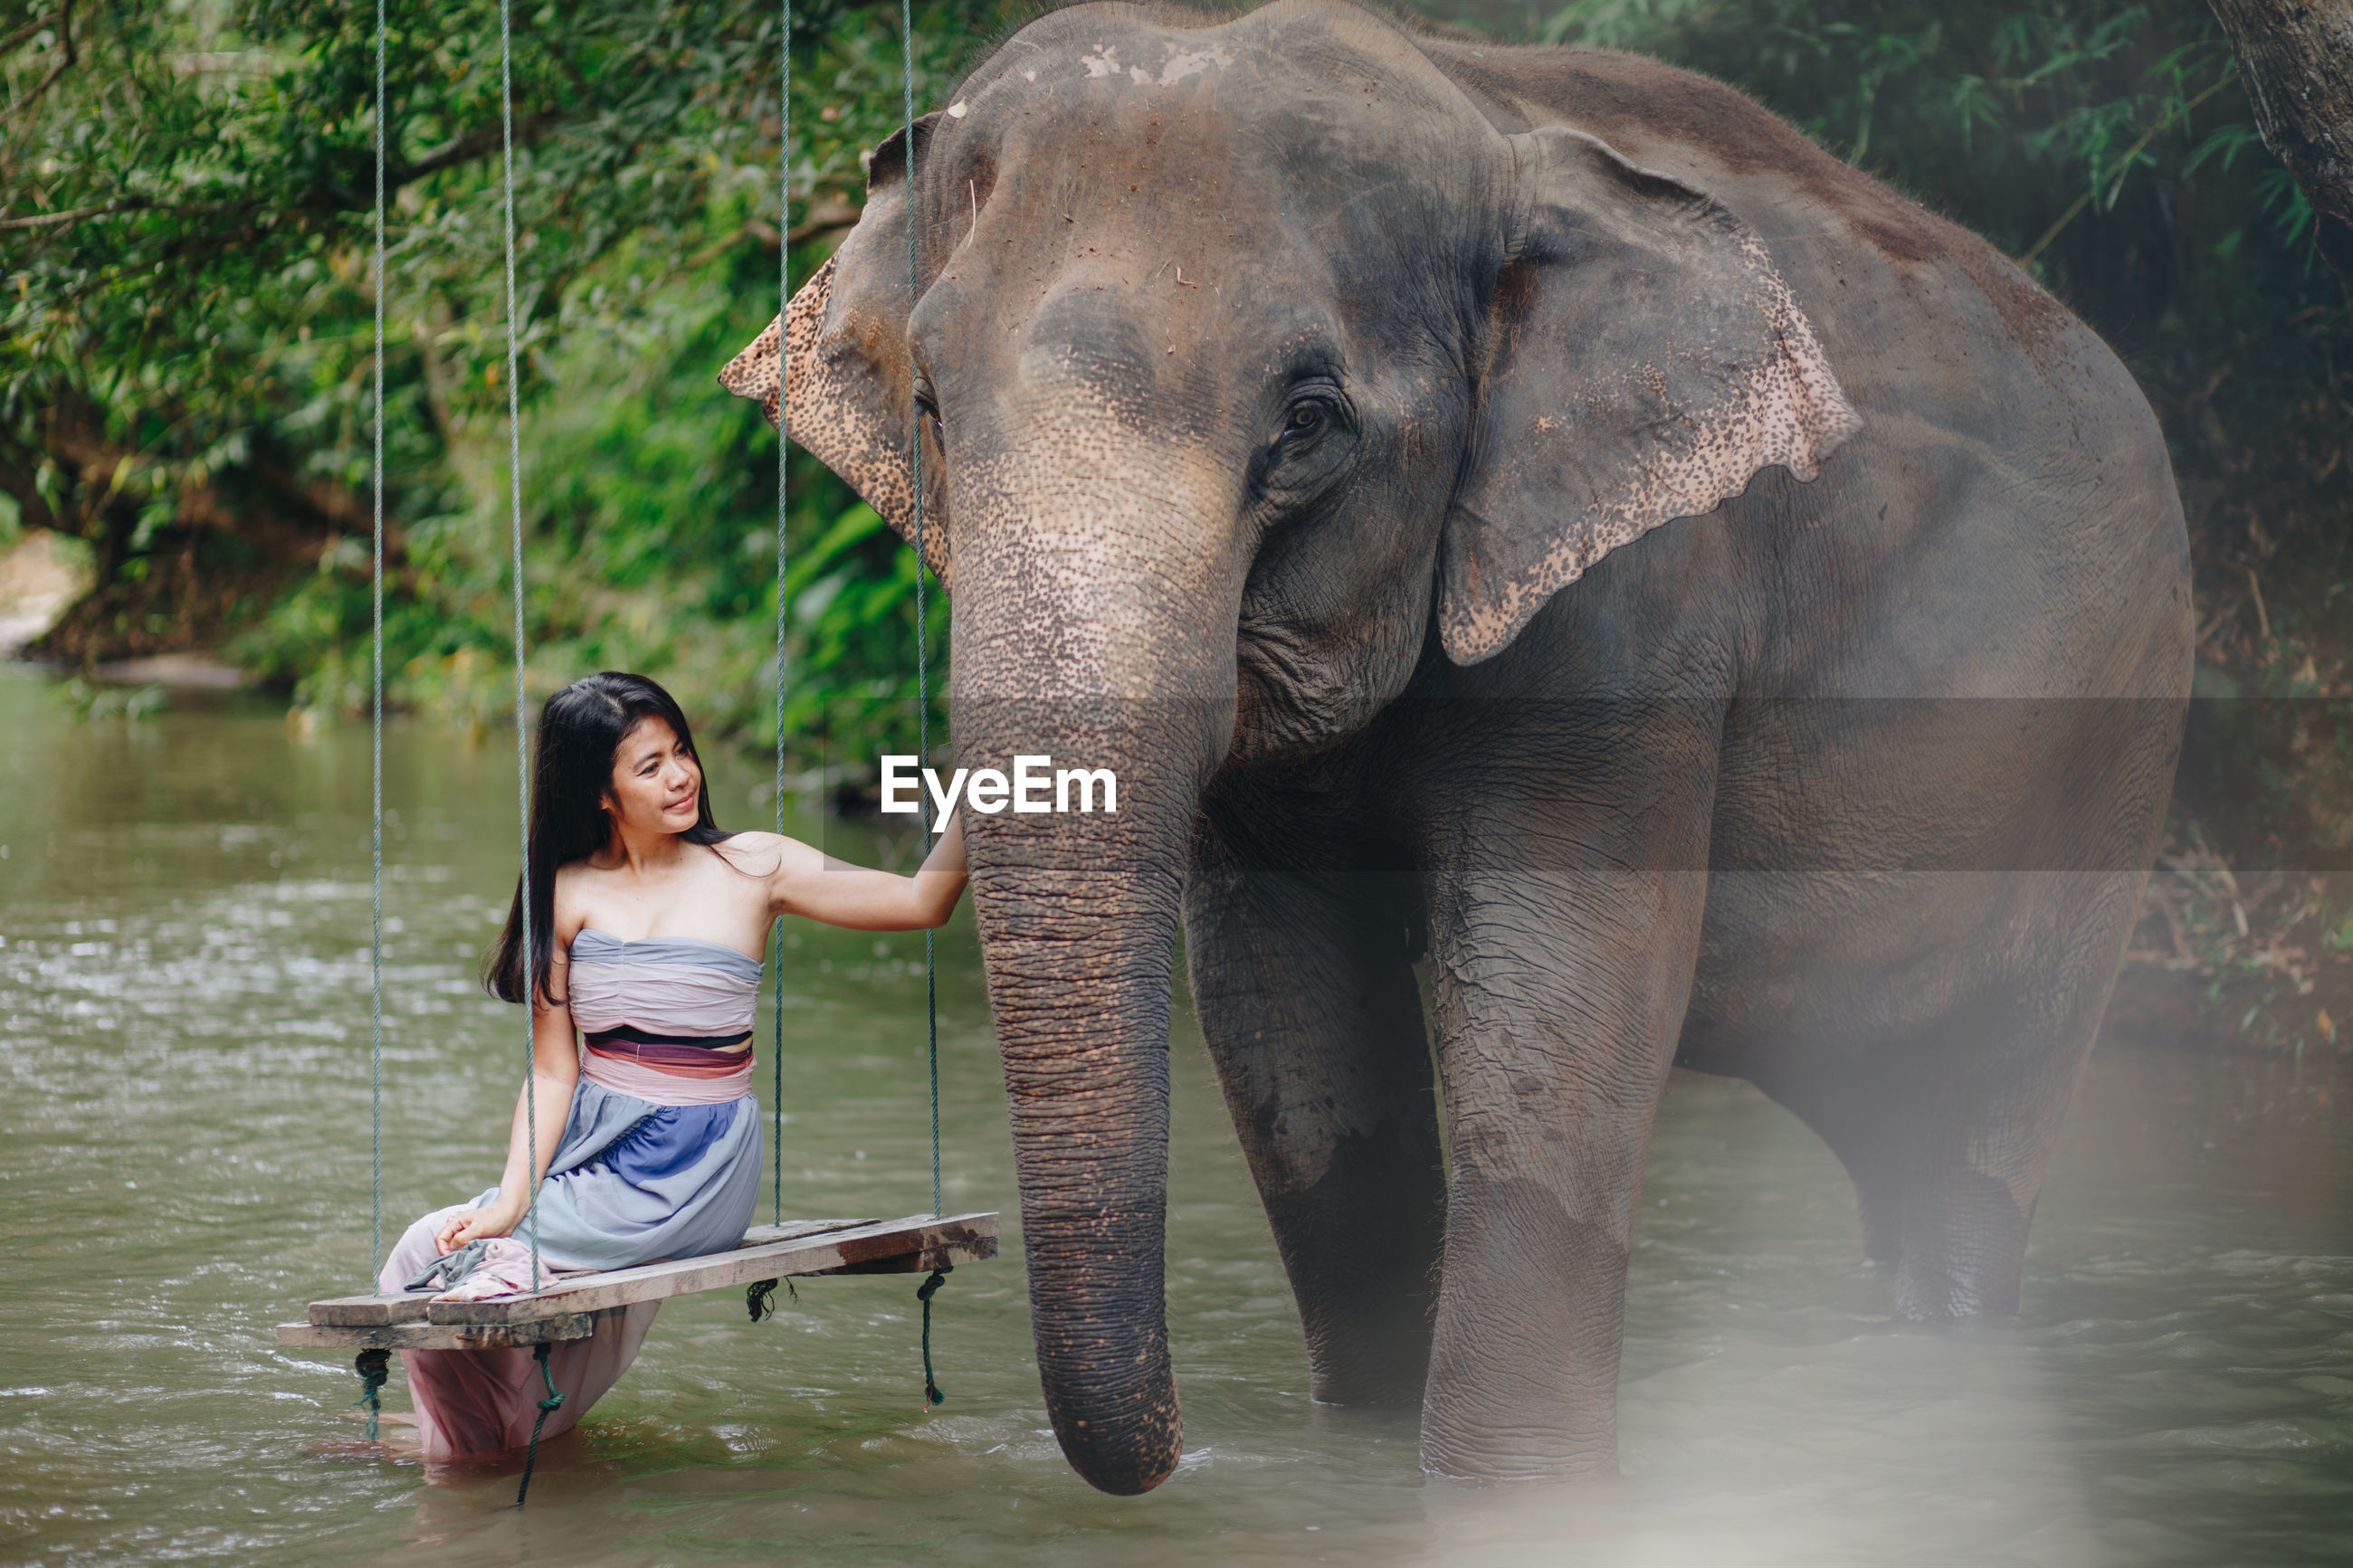 Woman sitting by elephant on swing in river at forest